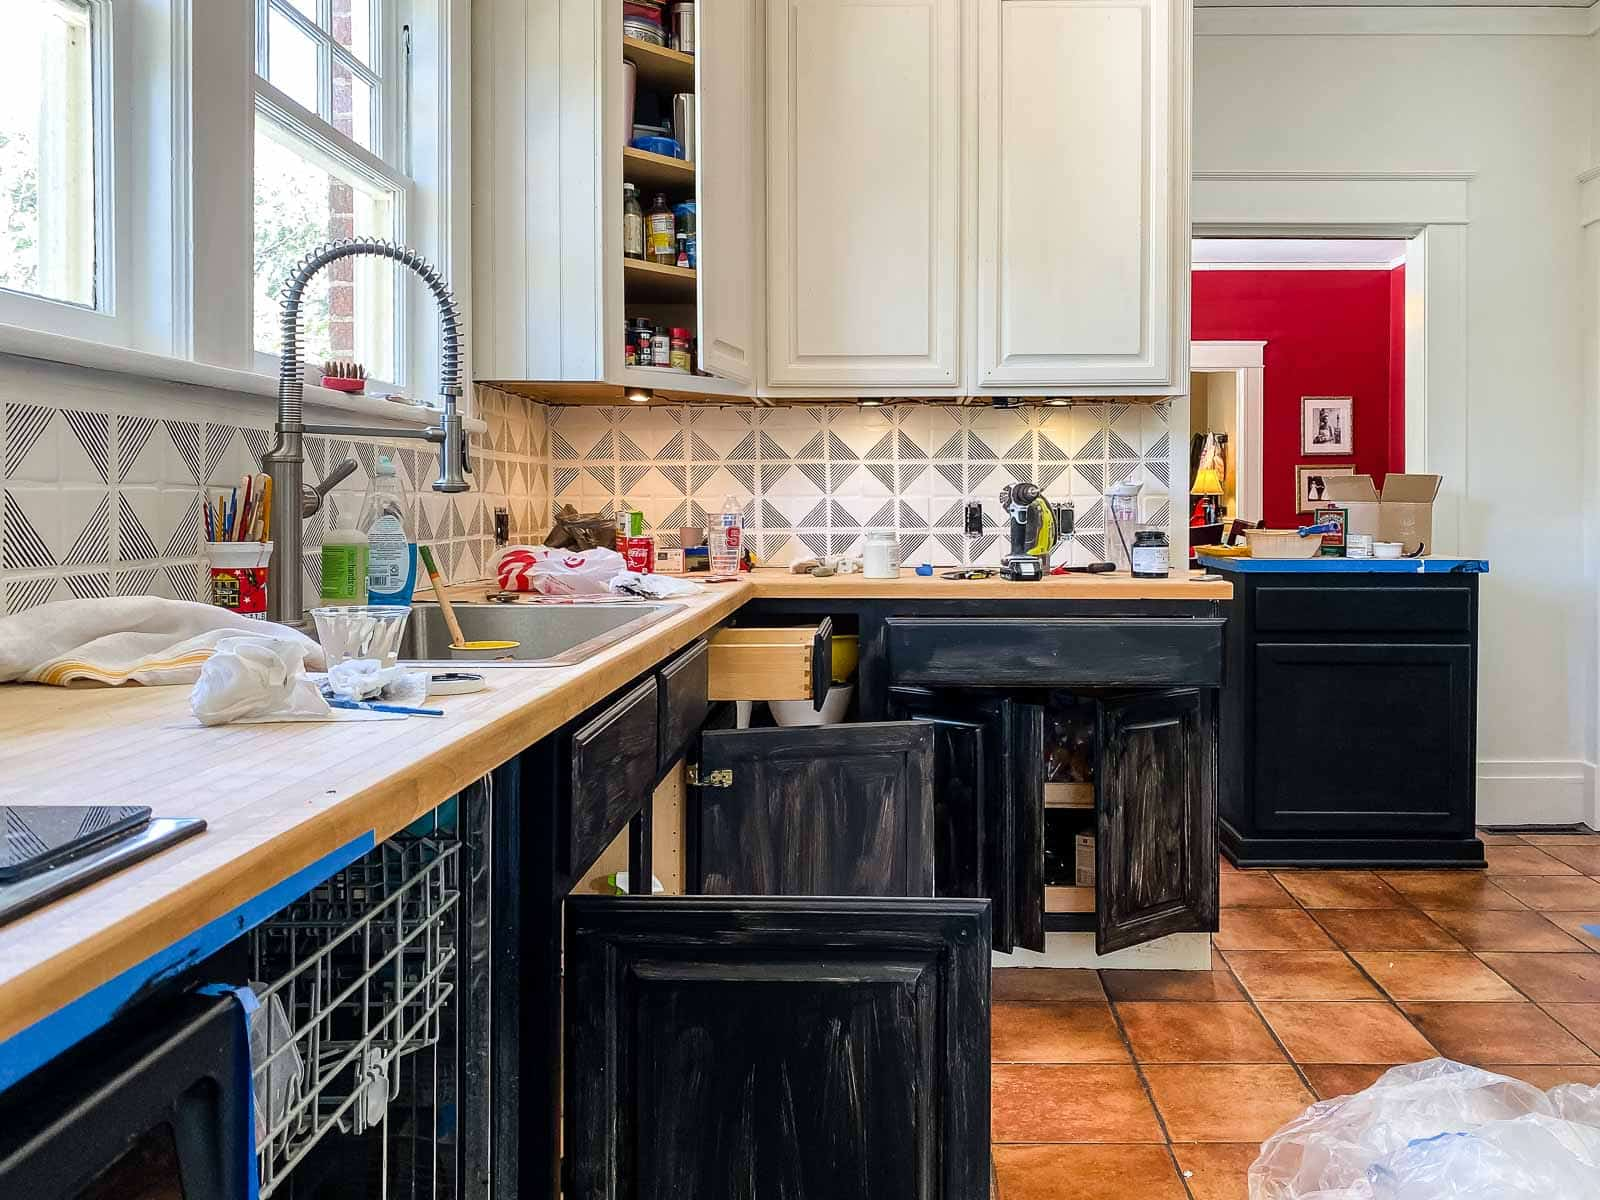 Budget Friendly Kitchen Makeover: Thea's Budget-Friendly Kitchen Makeover: Progress